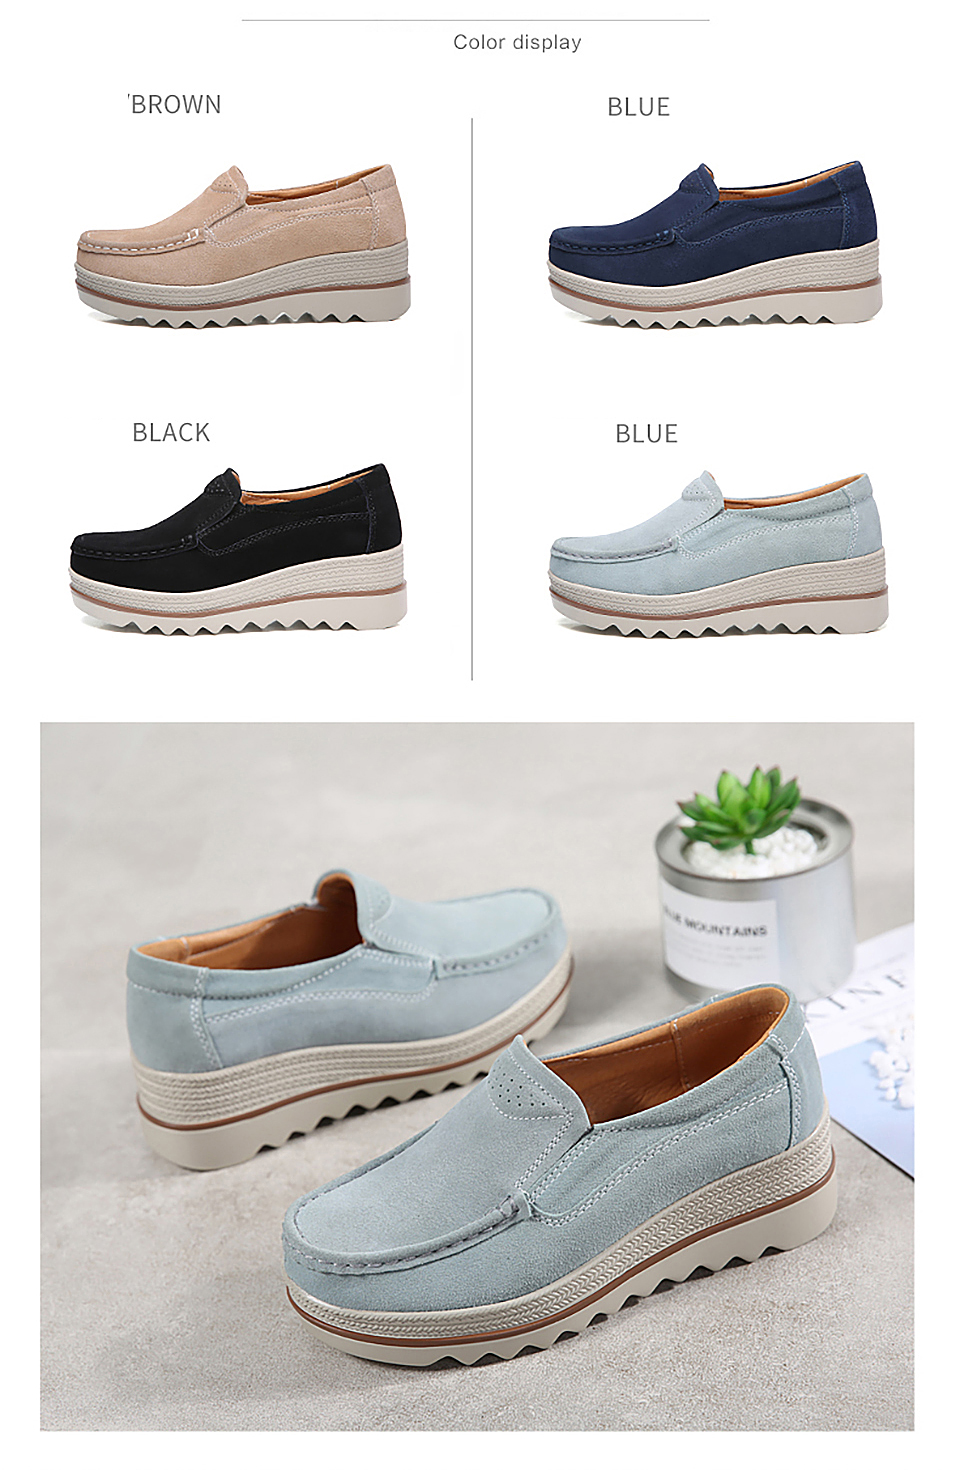 HTB1UCldOmzqK1RjSZPcq6zTepXaU 2019 Spring Women Flats Shoes Platform Sneakers Slip On Flats Leather Suede Ladies Loafers Moccasins Casual Shoes Women Creepers